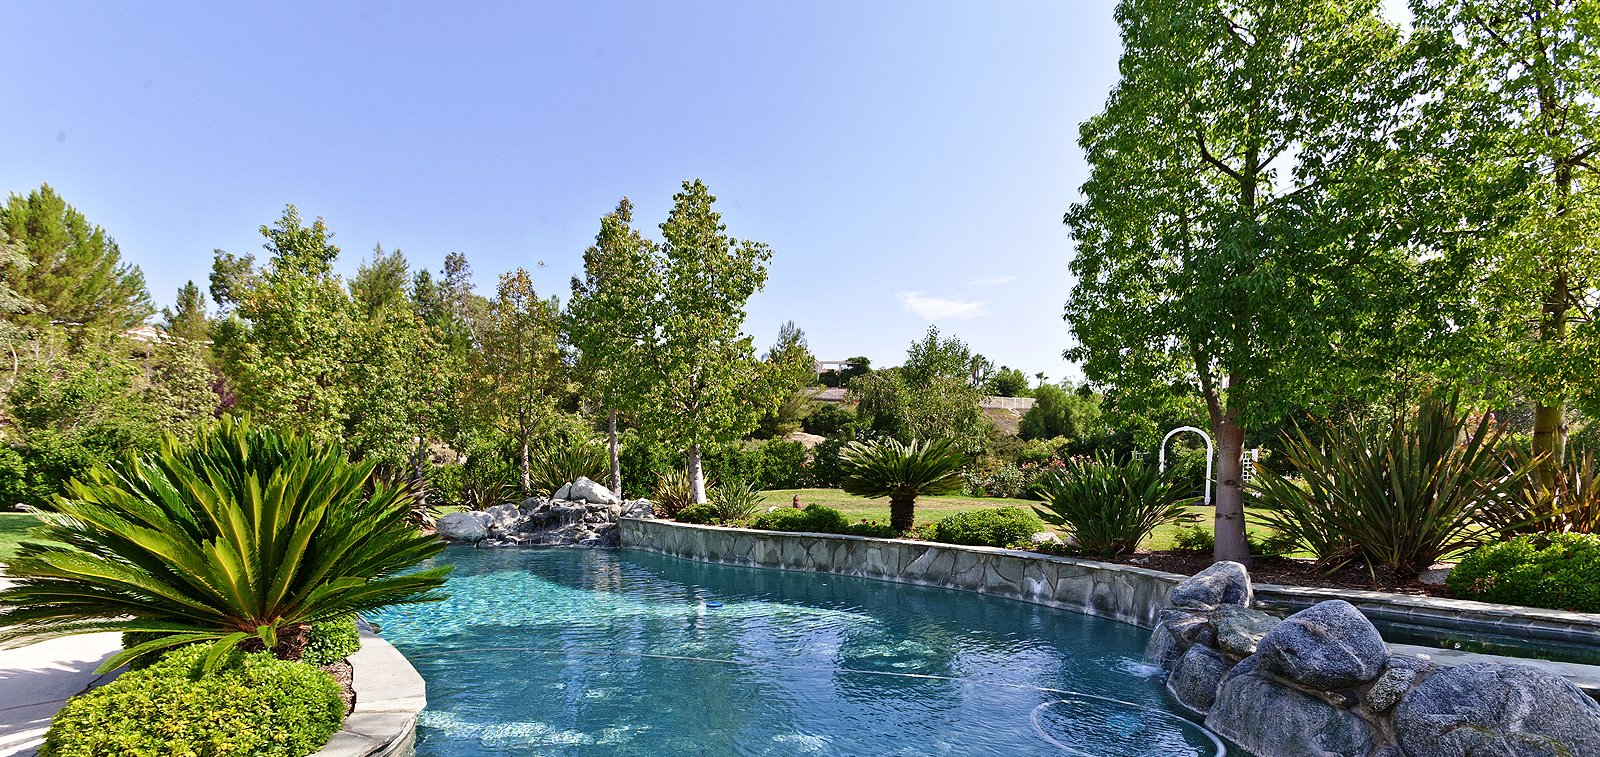 THE HENSLEY GROUP REAL ESTATE - beautiful swimming pool amidst lush greens